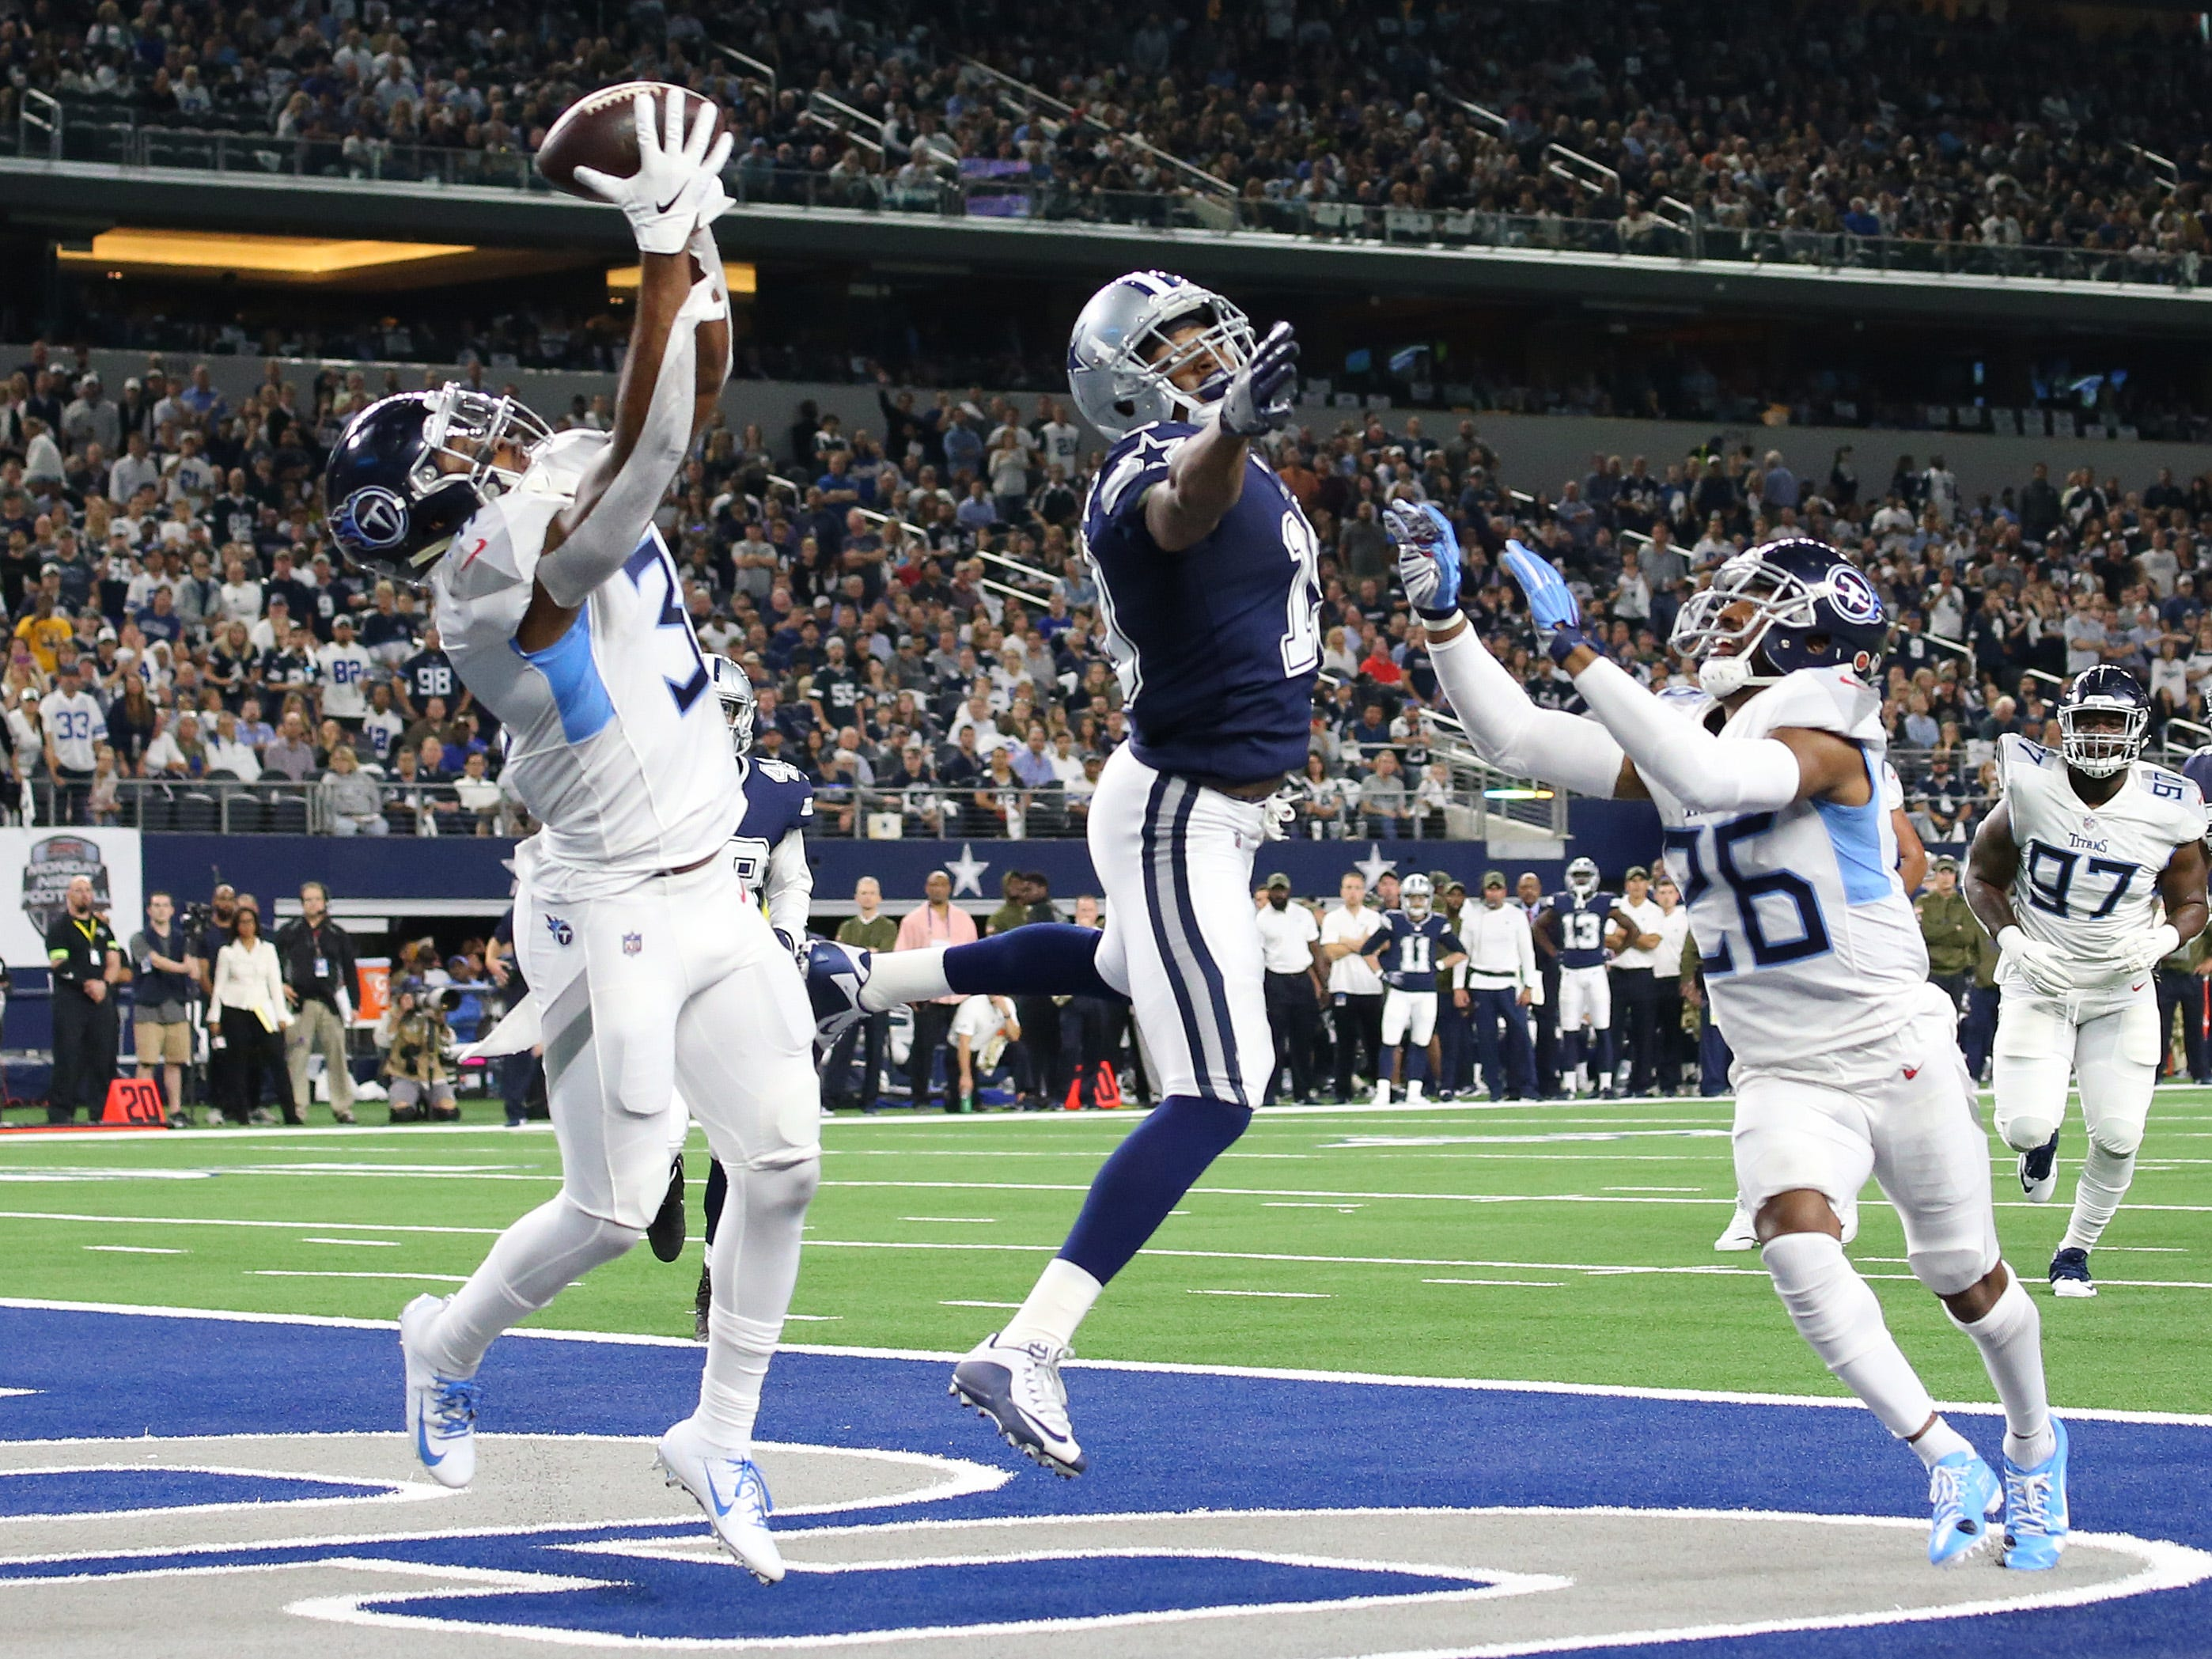 Nov 5, 2018; Arlington, TX, USA; Tennessee Titans safety Kevin Byard (31) intercepts the ball in the end zone intended for Dallas Cowboys receiver Amari Cooper (19) in the first quarter at AT&T Stadium.